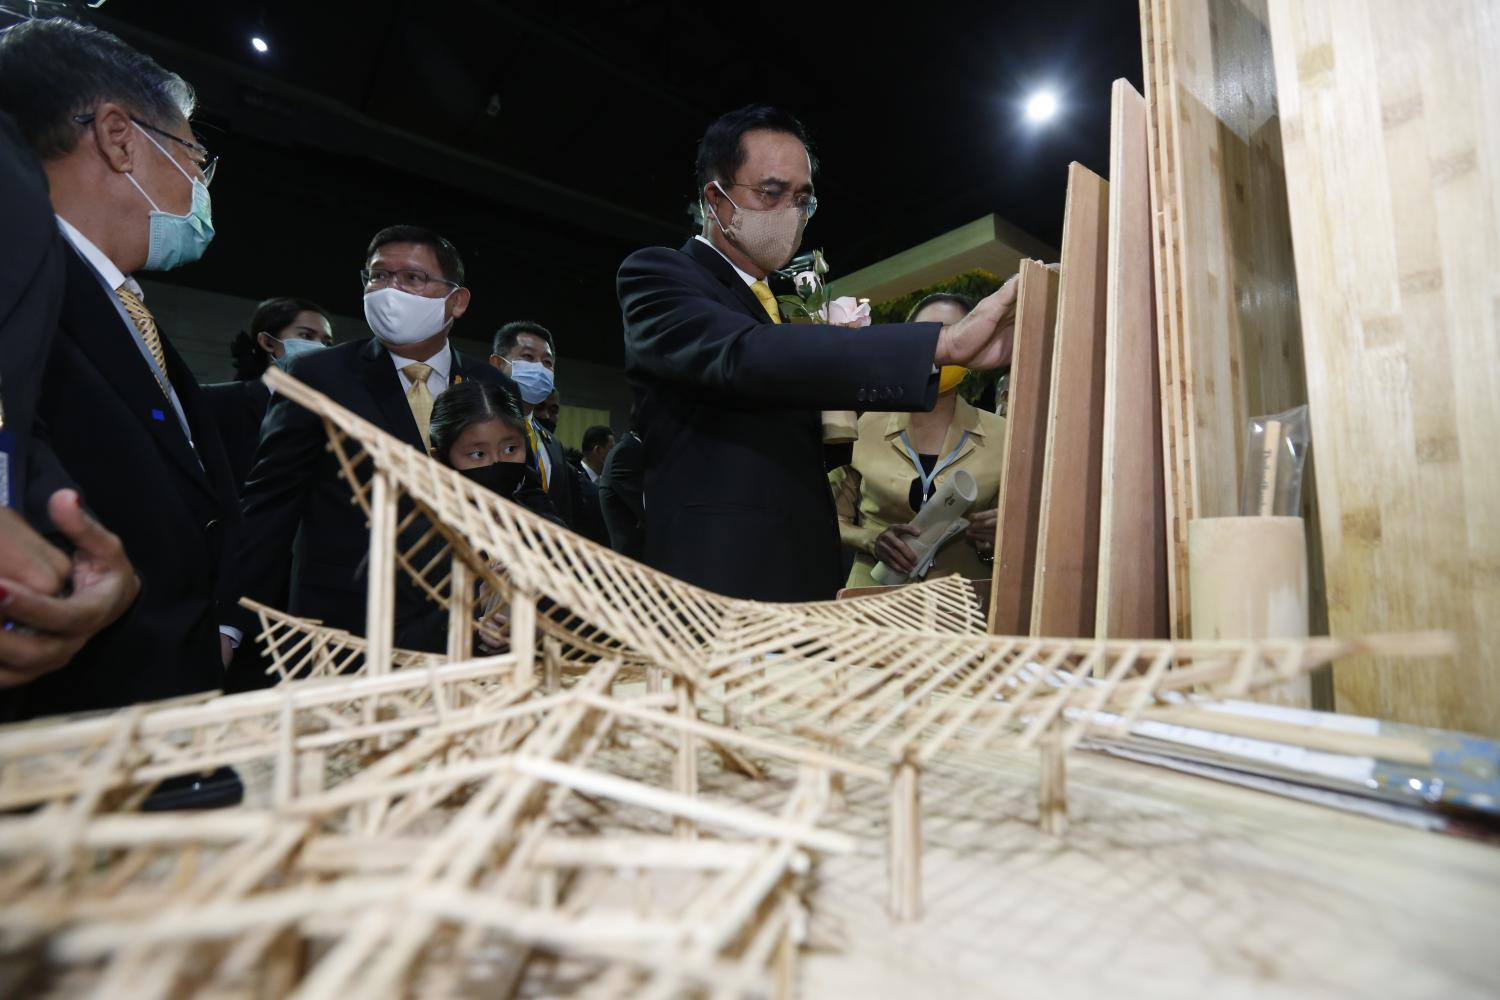 Prime Minister Prayut Chan-o-cha looks at exhibitions at a forum on bio, circular and green economies in Nonthaburi on Wednesday. (Photo by Pattarapong Chatpattarasill)